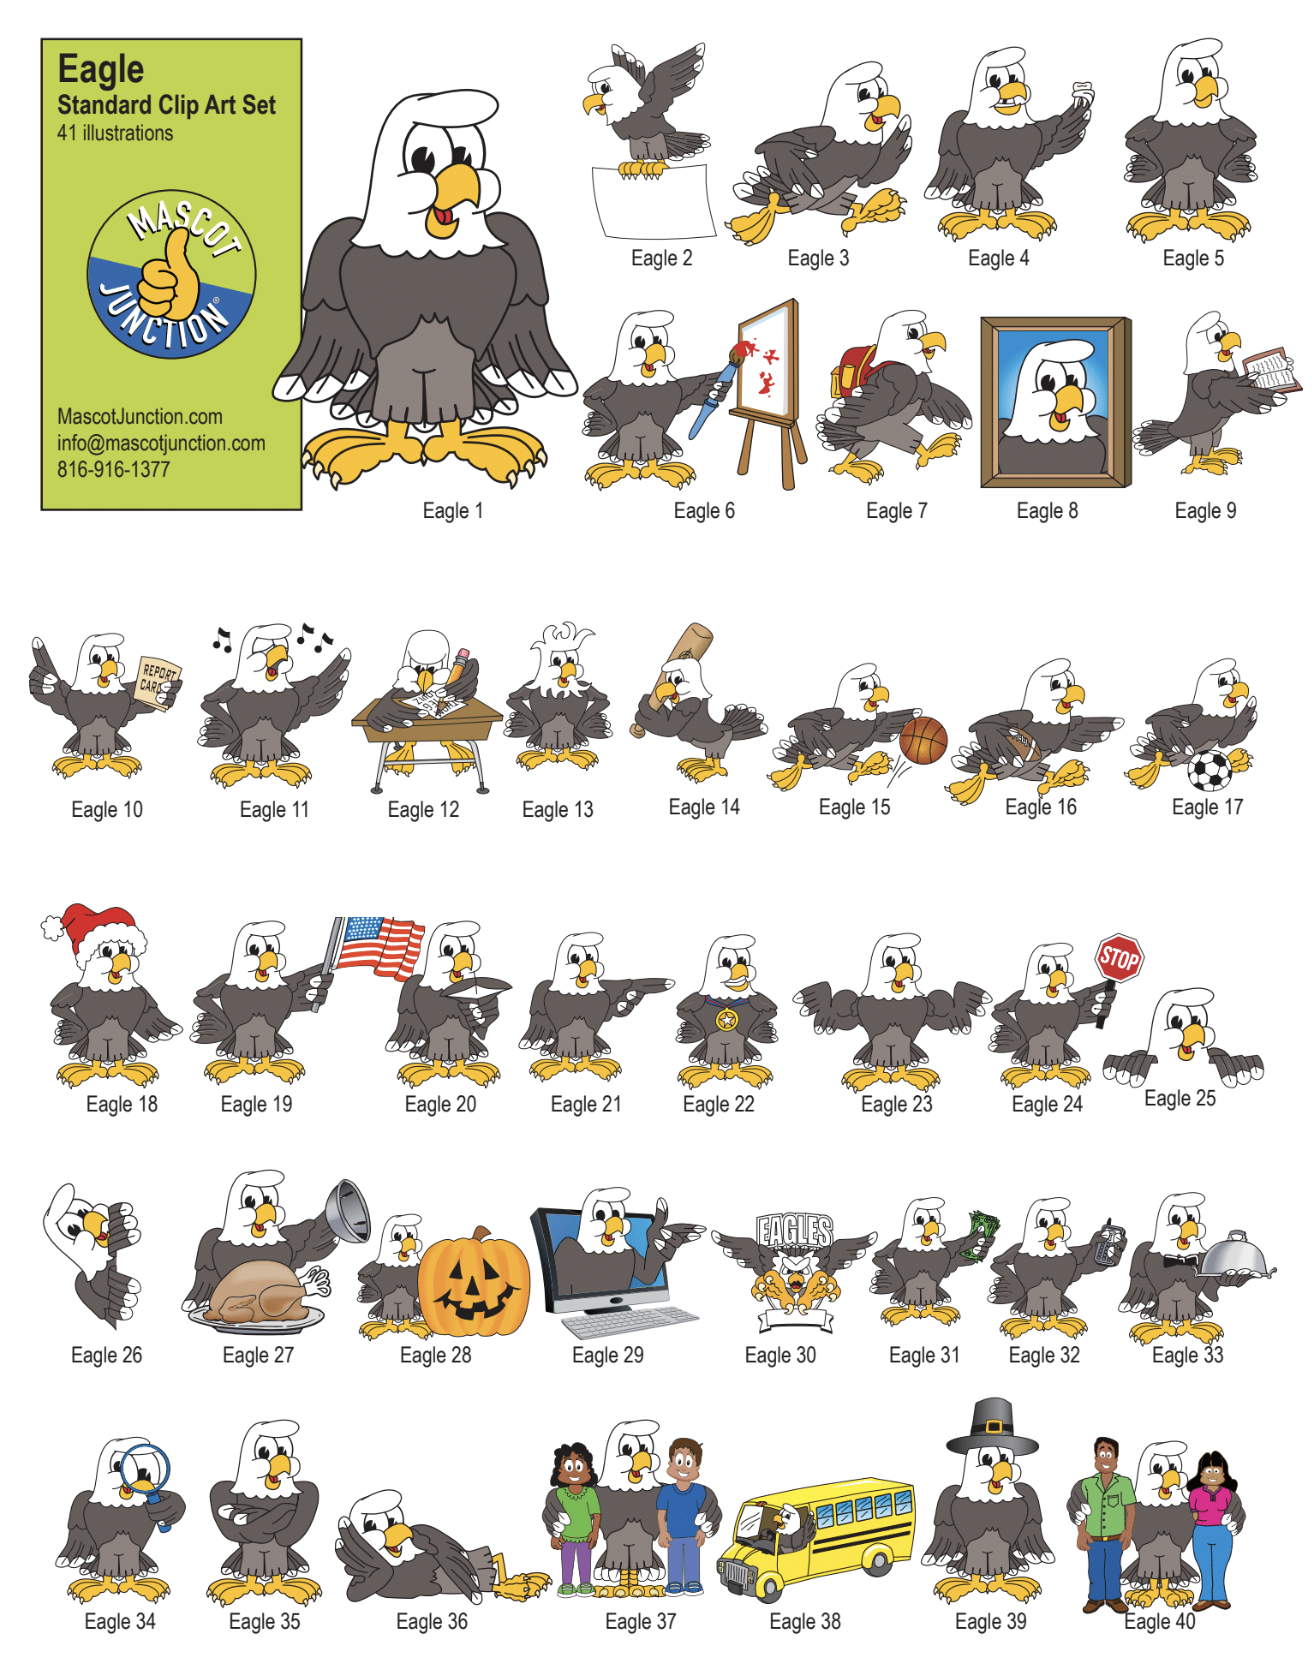 Eagle Mascot Clip Art Behavior PBIS